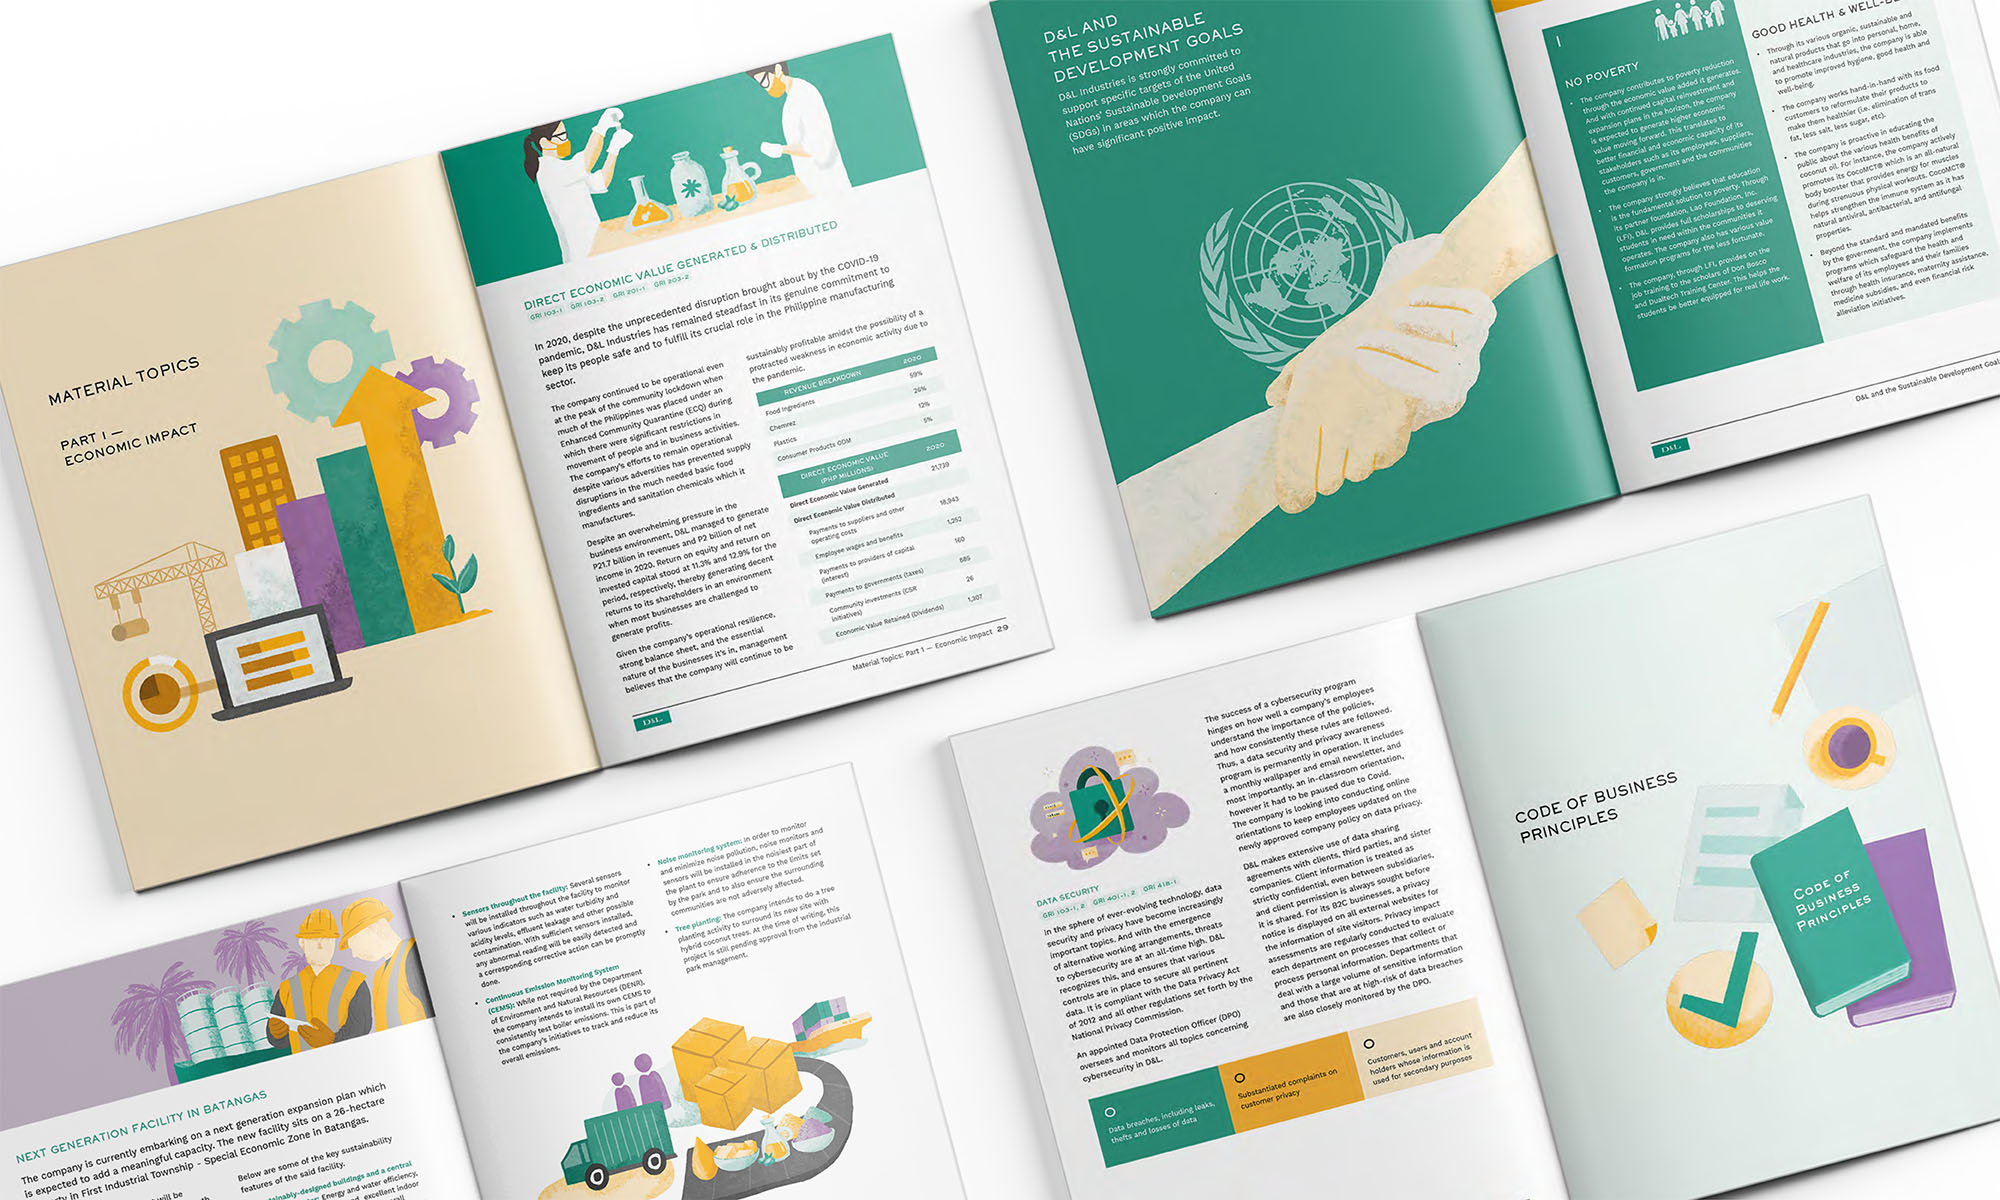 Spreads from the D&L Sustainability Report